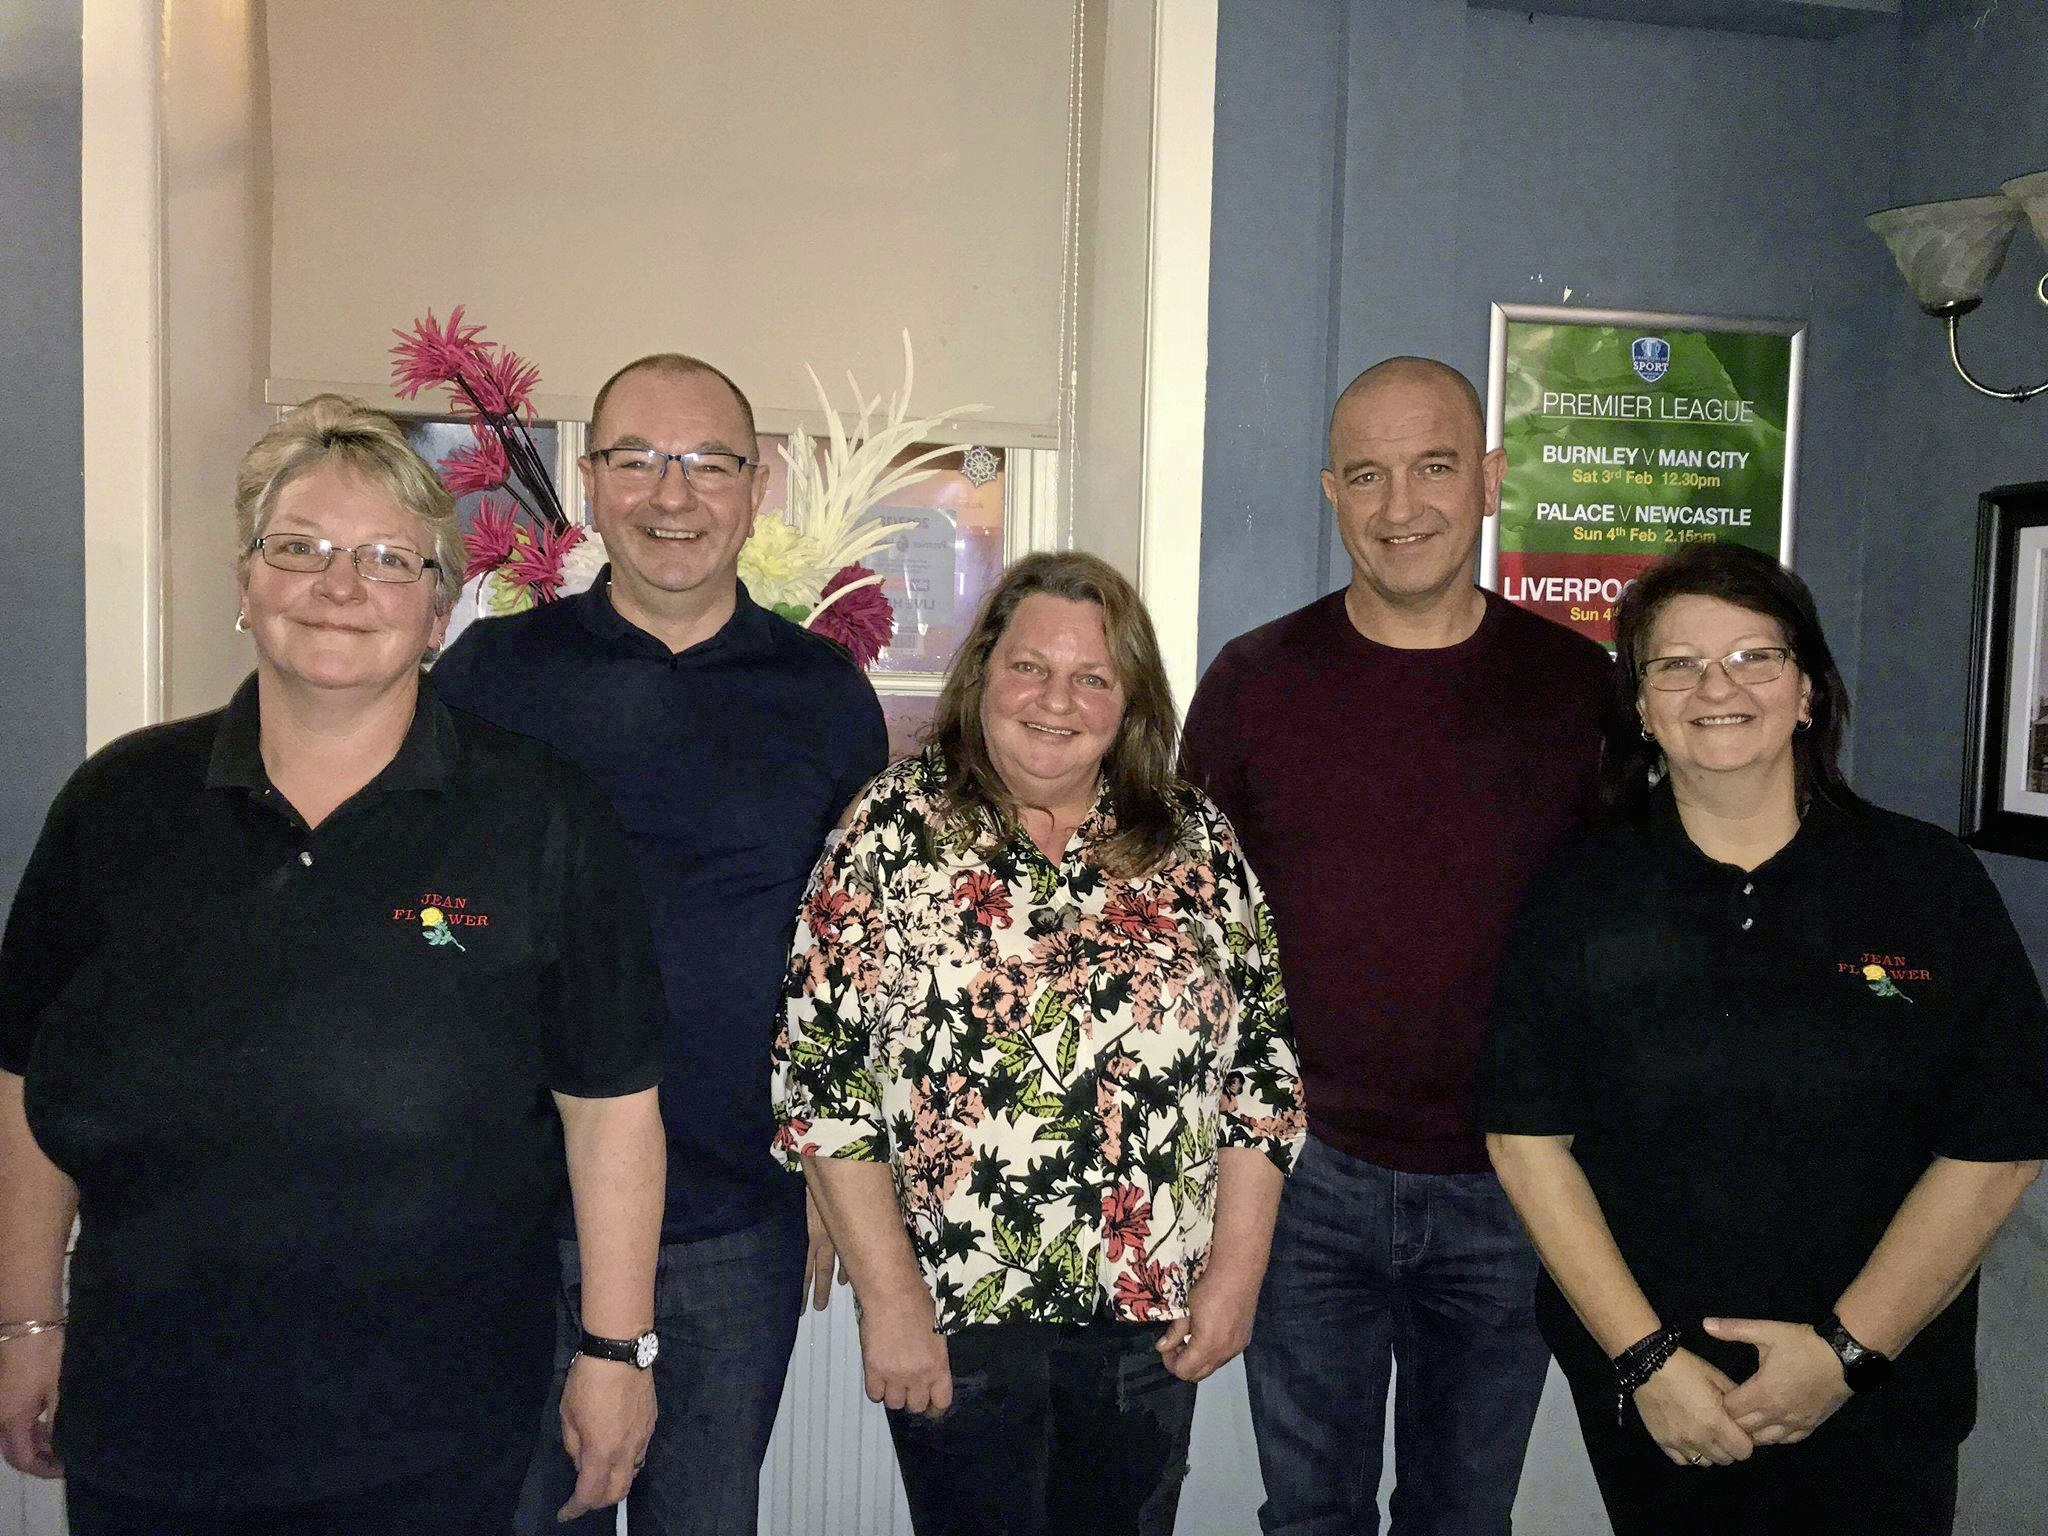 Organisers Harry, Loz, Susan, Gillian, and Amanda at a previous Jean Harrison memory charity darts night.